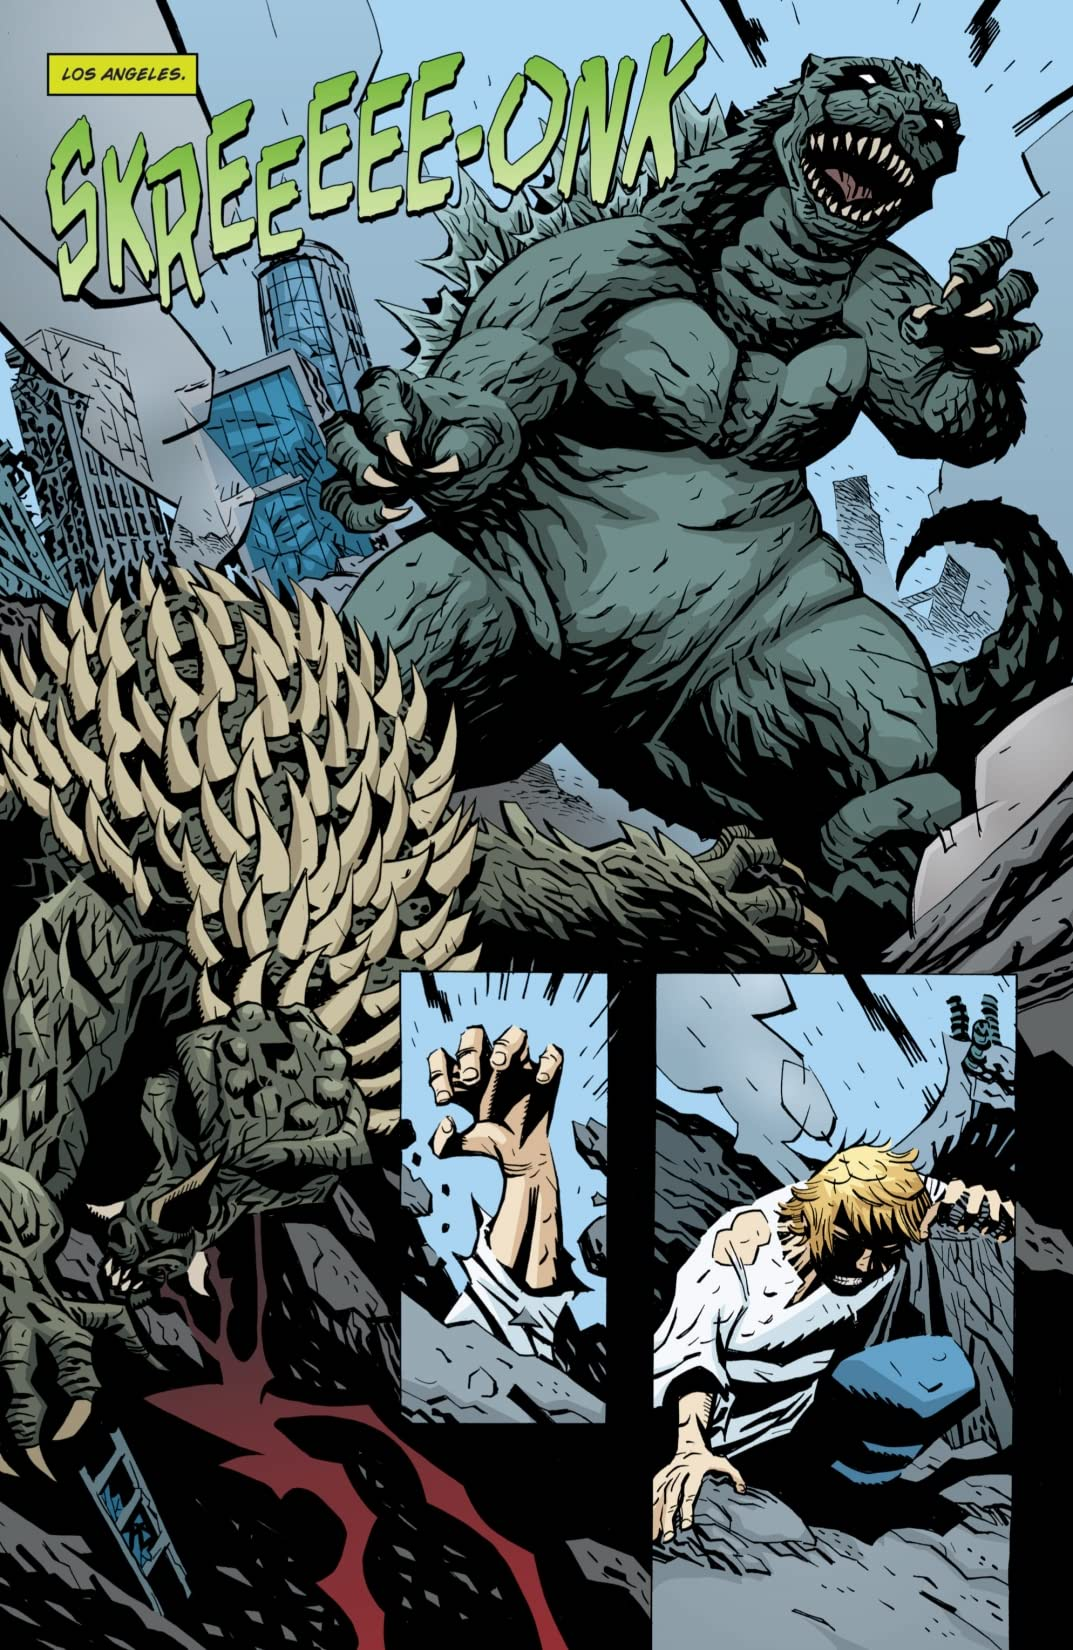 Godzilla: Kingdom of Monsters #5